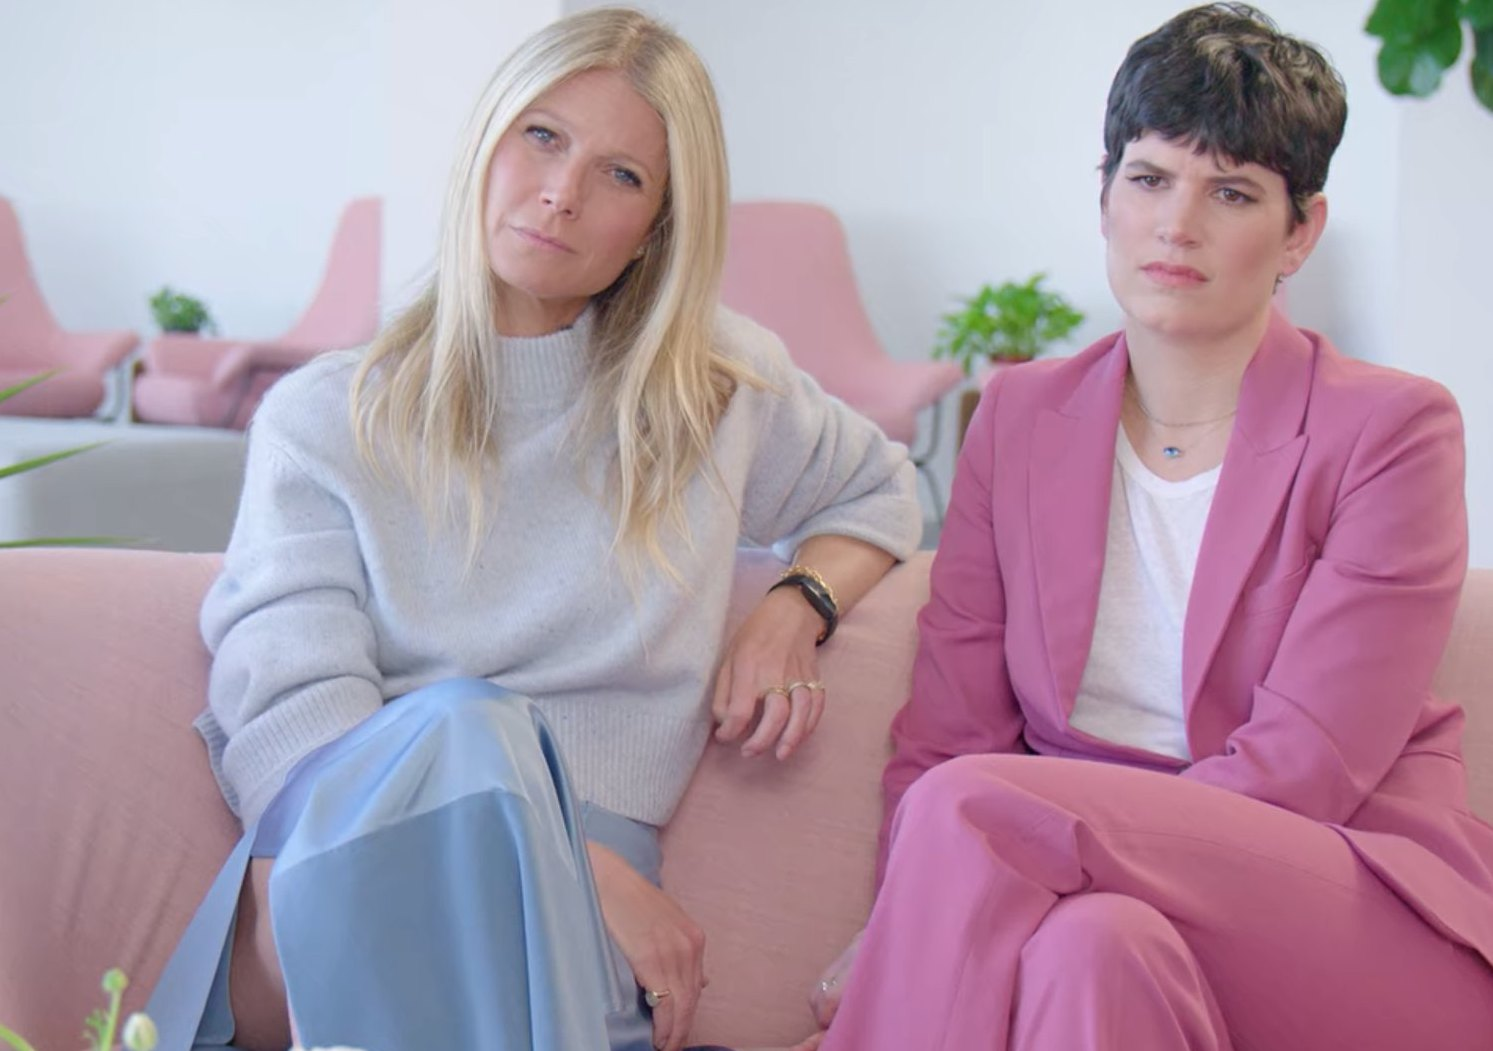 Here's How to Get a Couch Like That Millennial Pink One on 'The Goop Lab' | Hunker